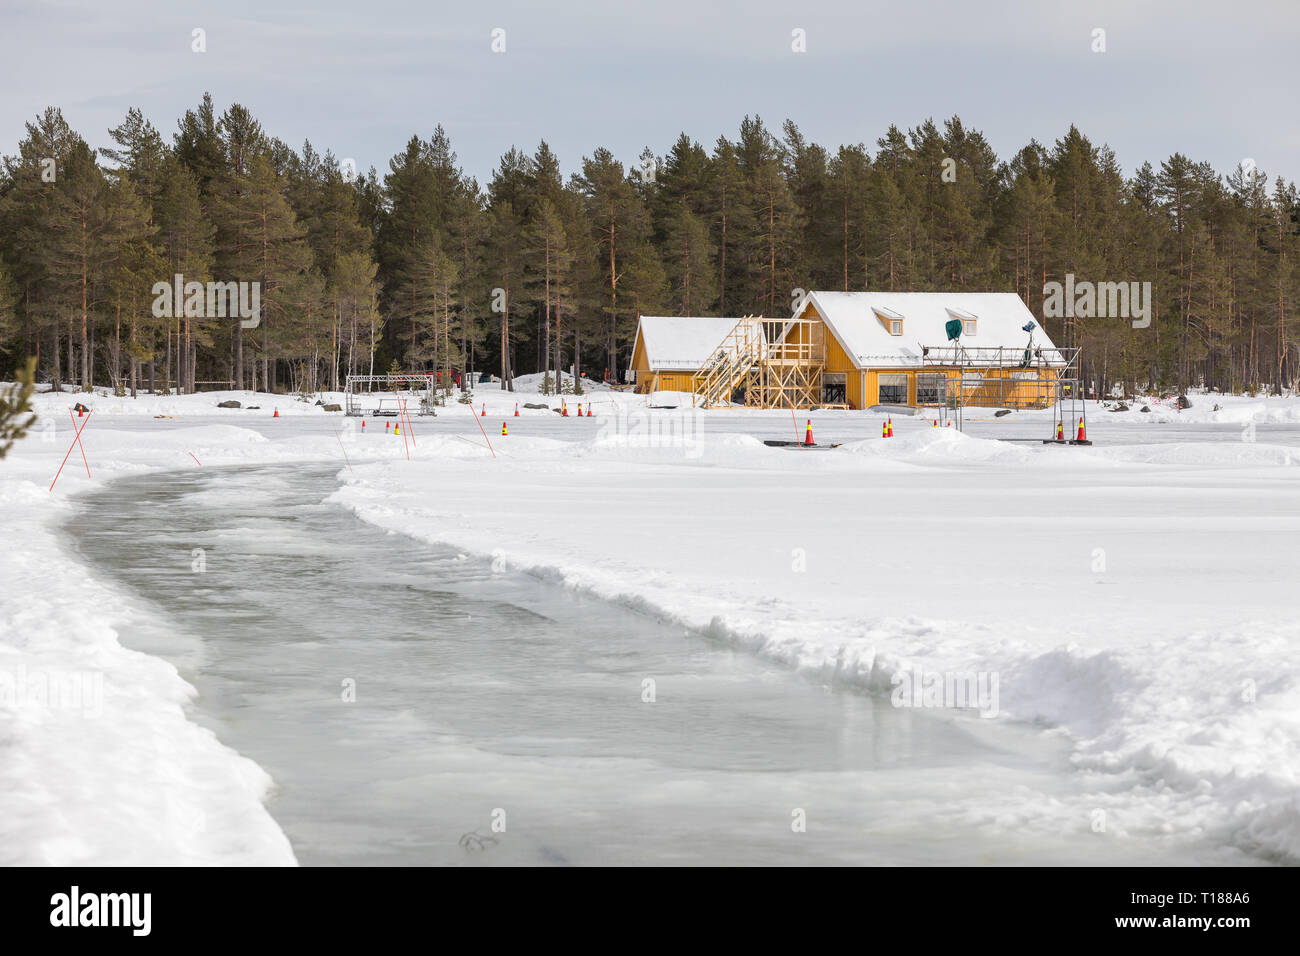 hakadal-norway-24th-march-2019-final-preparations-taking-place-ready-to-start-filming-the-25th-james-bond-film-in-the-forest-north-of-oslo-norway-credit-paul-smithalamy-live-news-T188A6.jpg